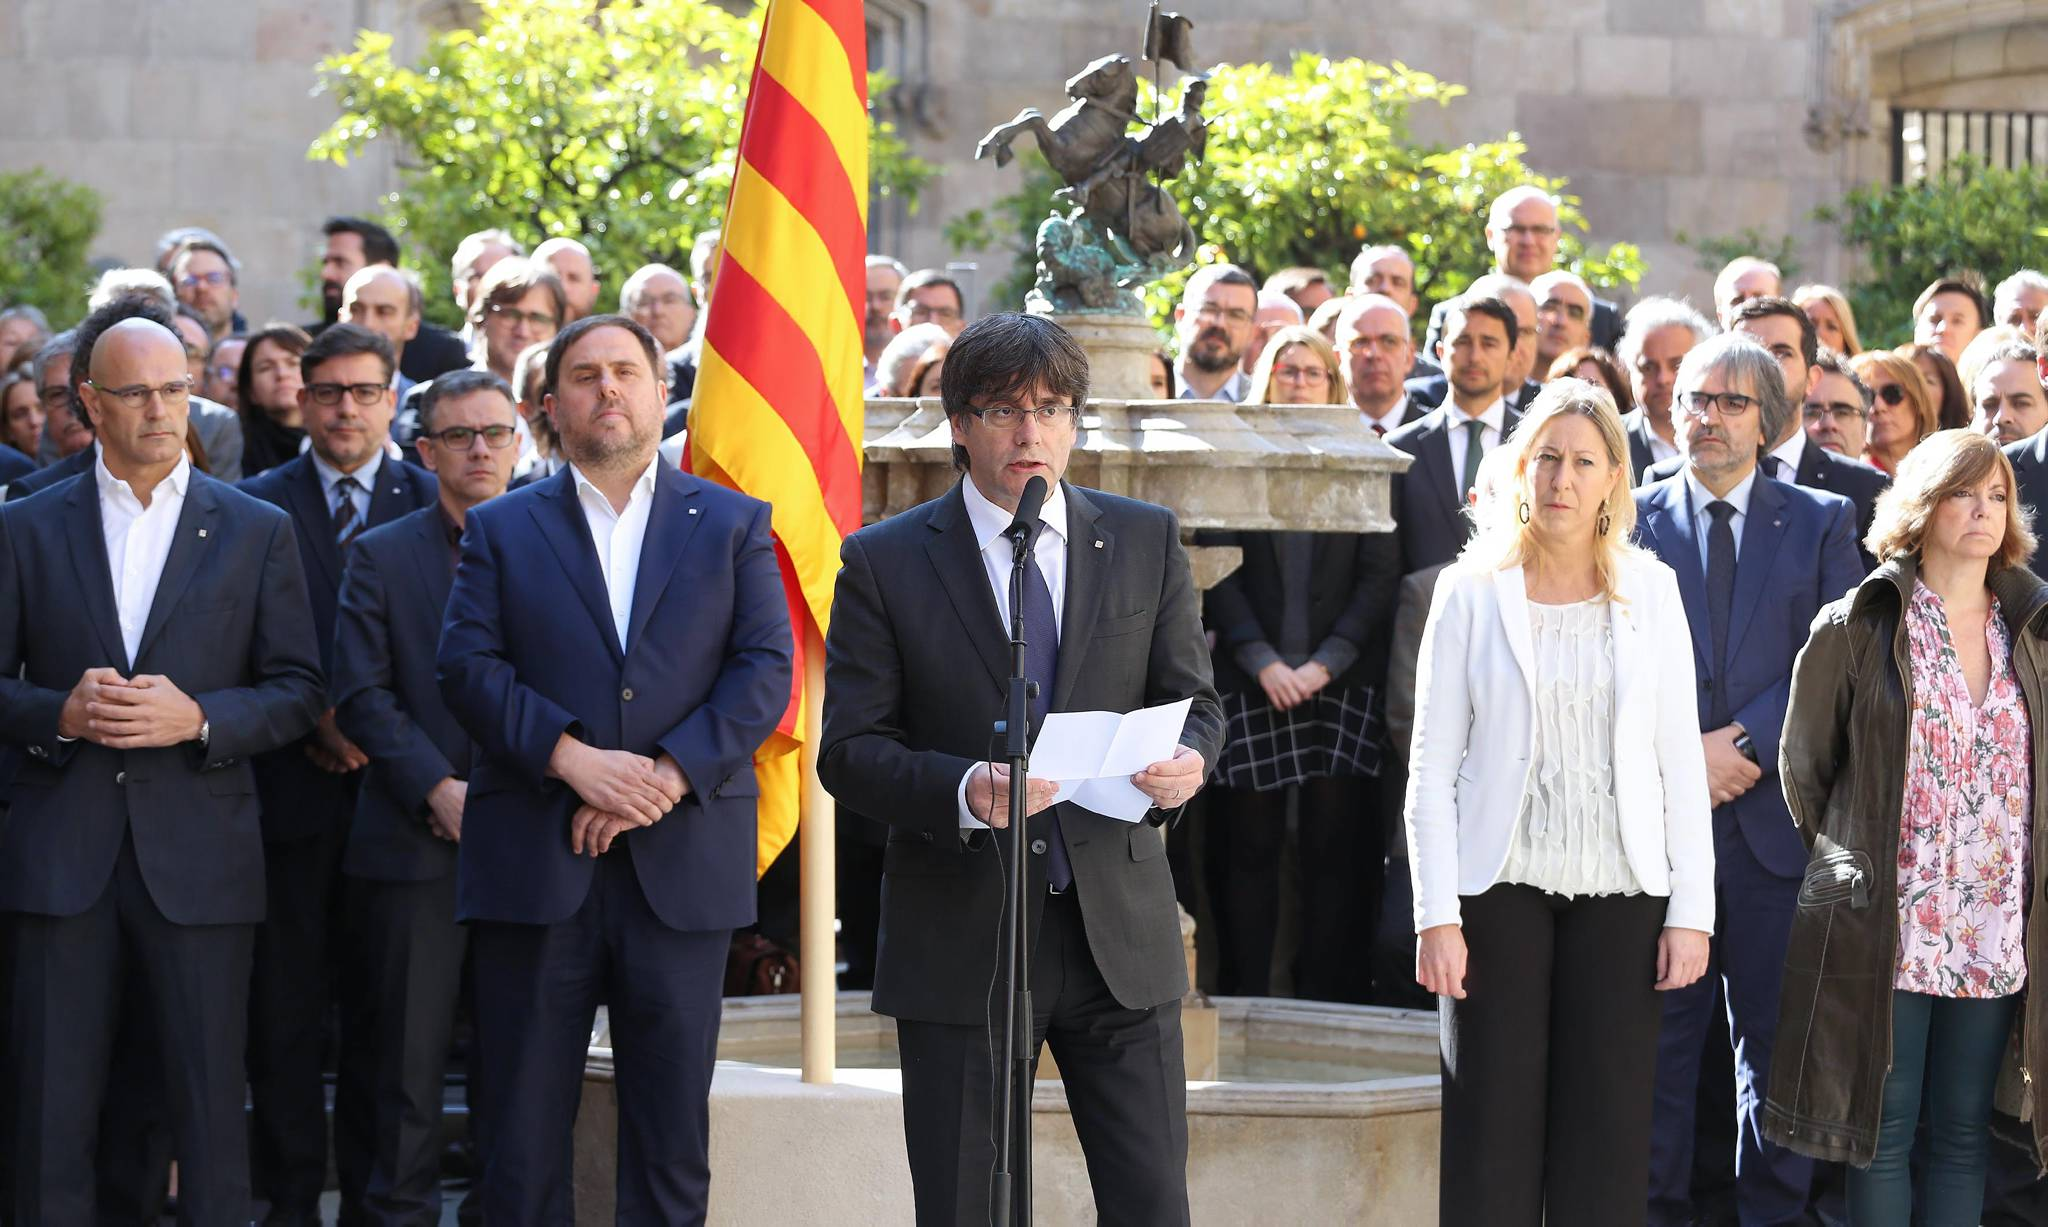 President Puigdemont during his intervention